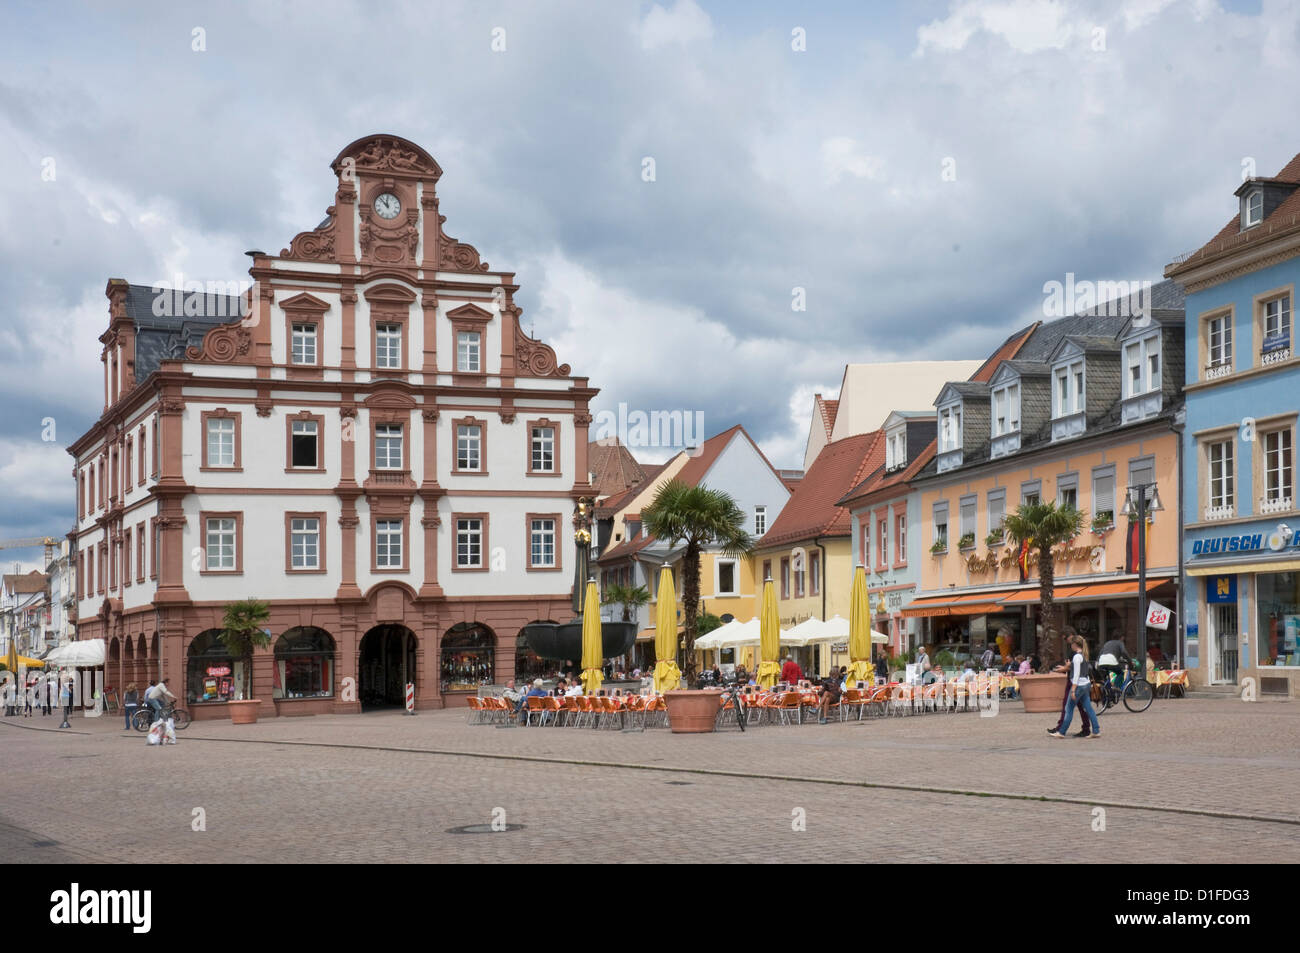 The Town Hall in the main square, Speyer, Rhineland Palatinate, Germany, Europe - Stock Image